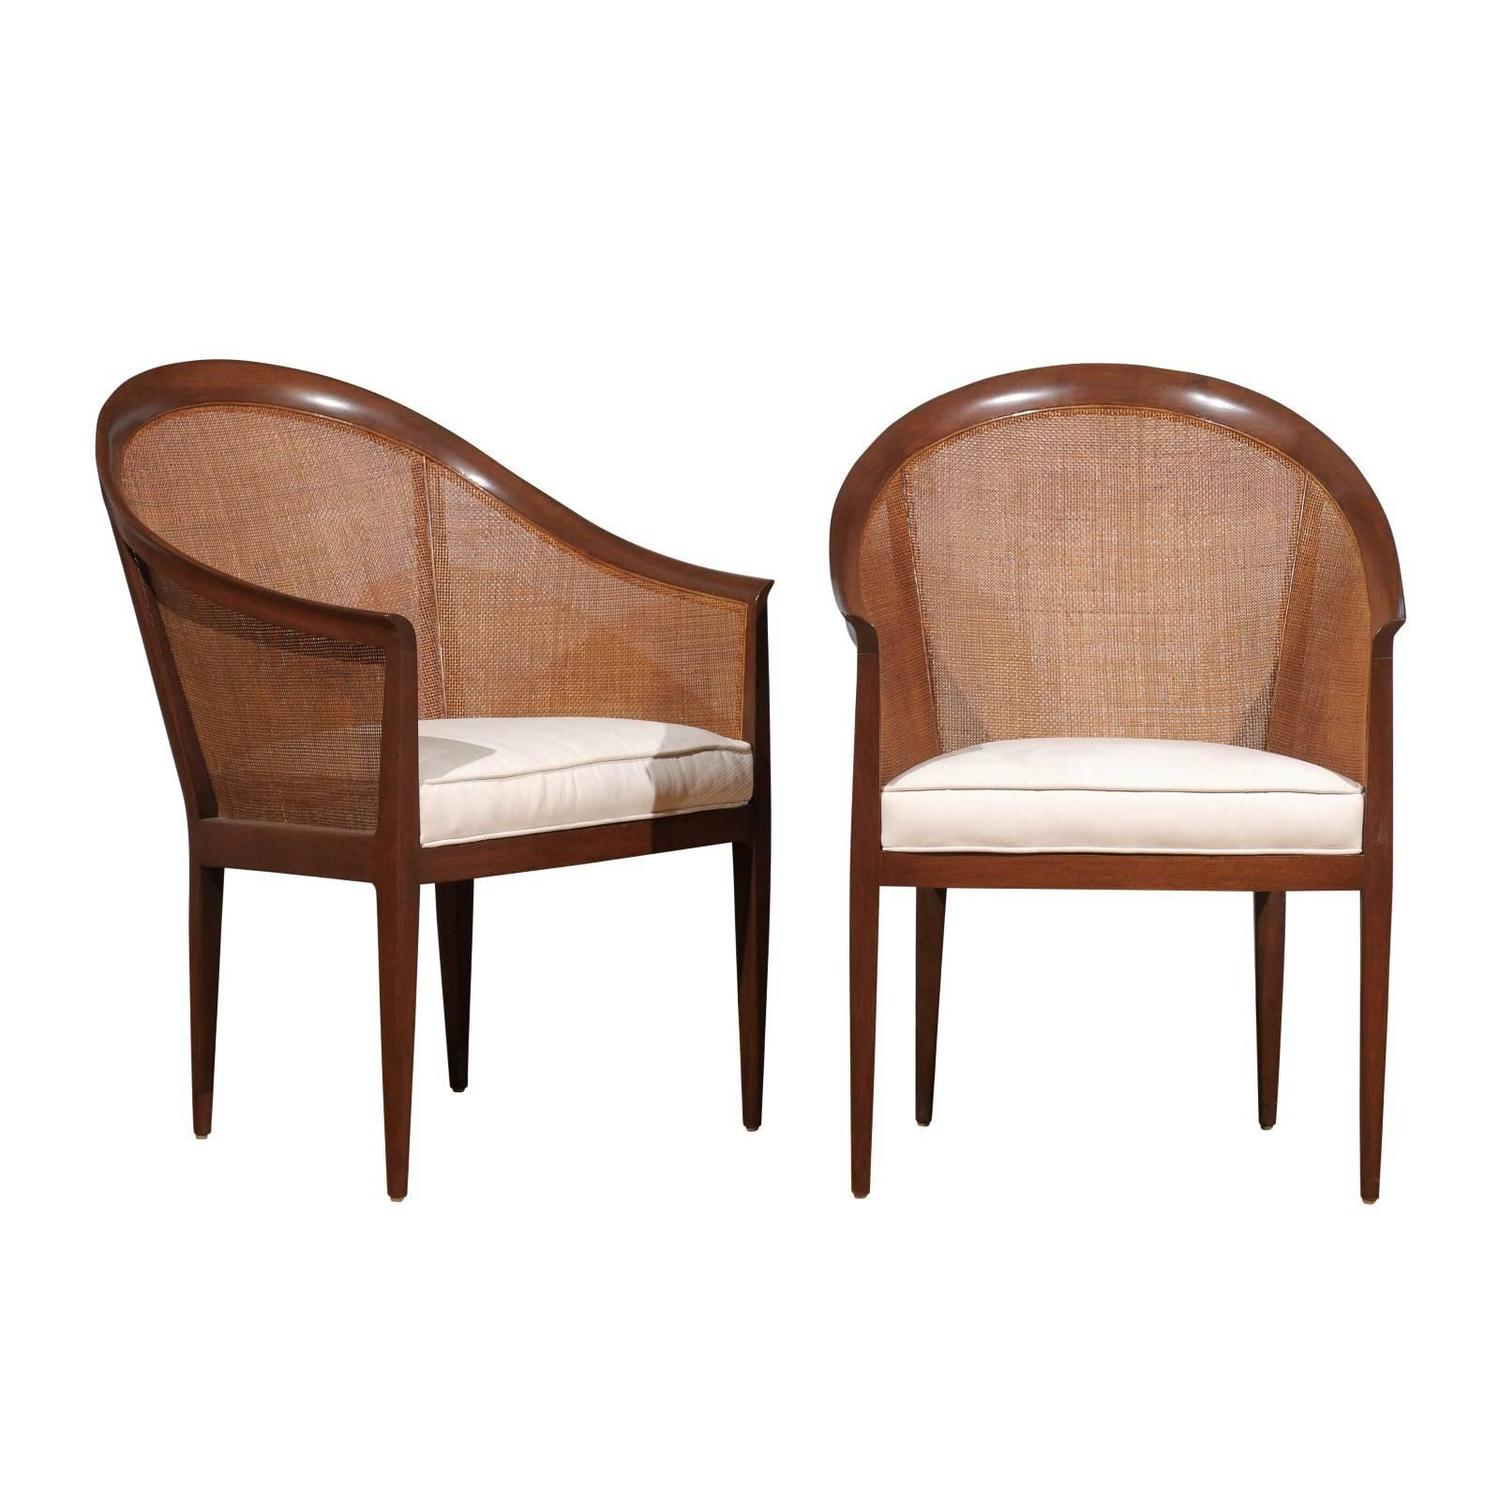 Directional Furniture Sofas Chairs Table & More 216 For Sale